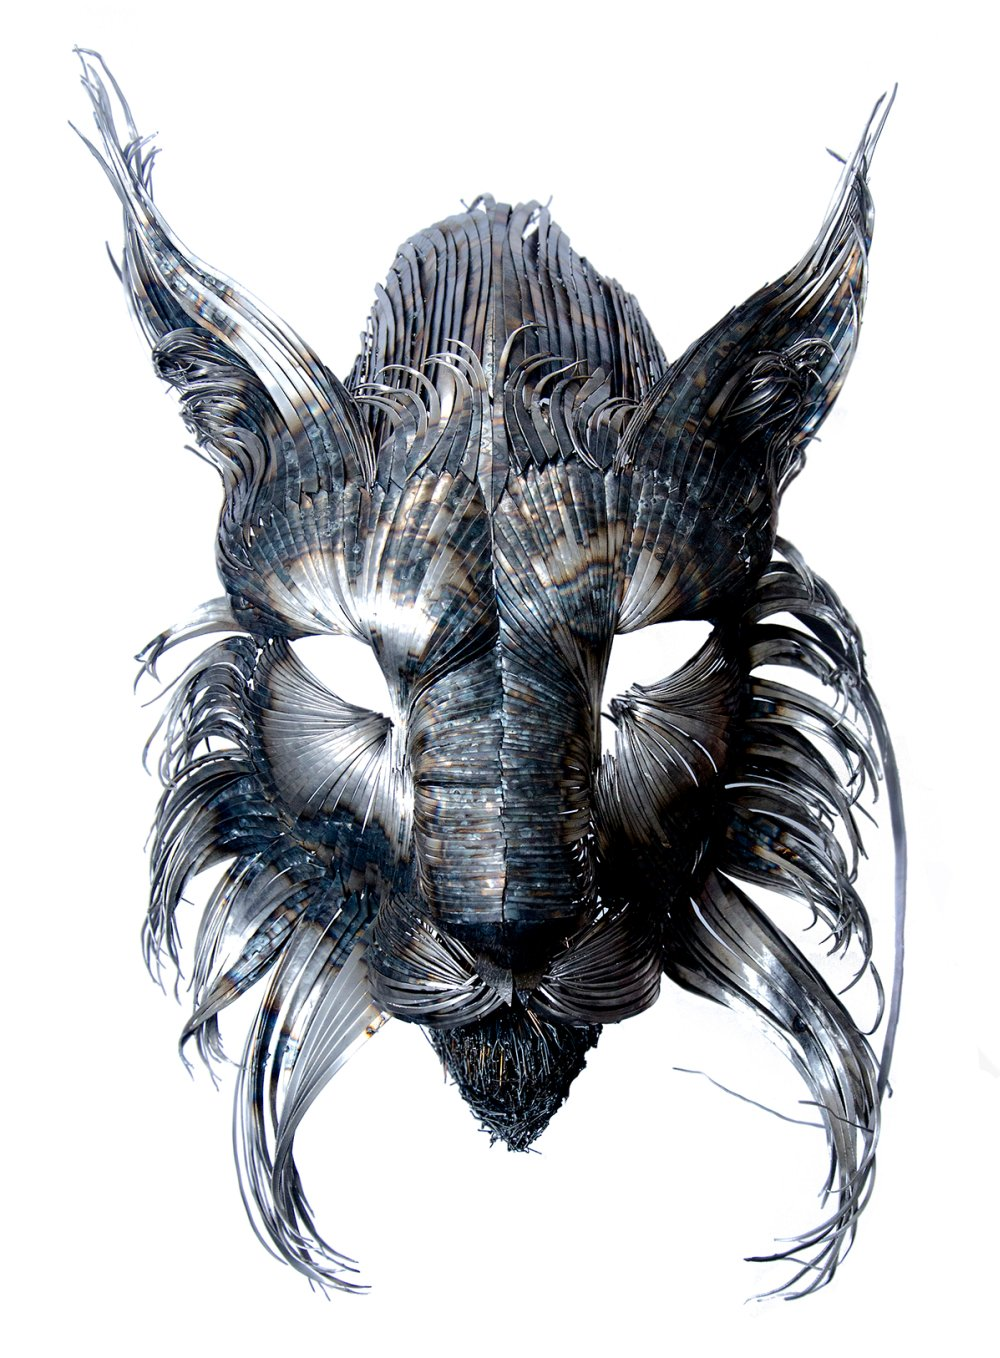 Selçuk Yılmaz_Animal Steel Sculpture_Lynx-f34e70